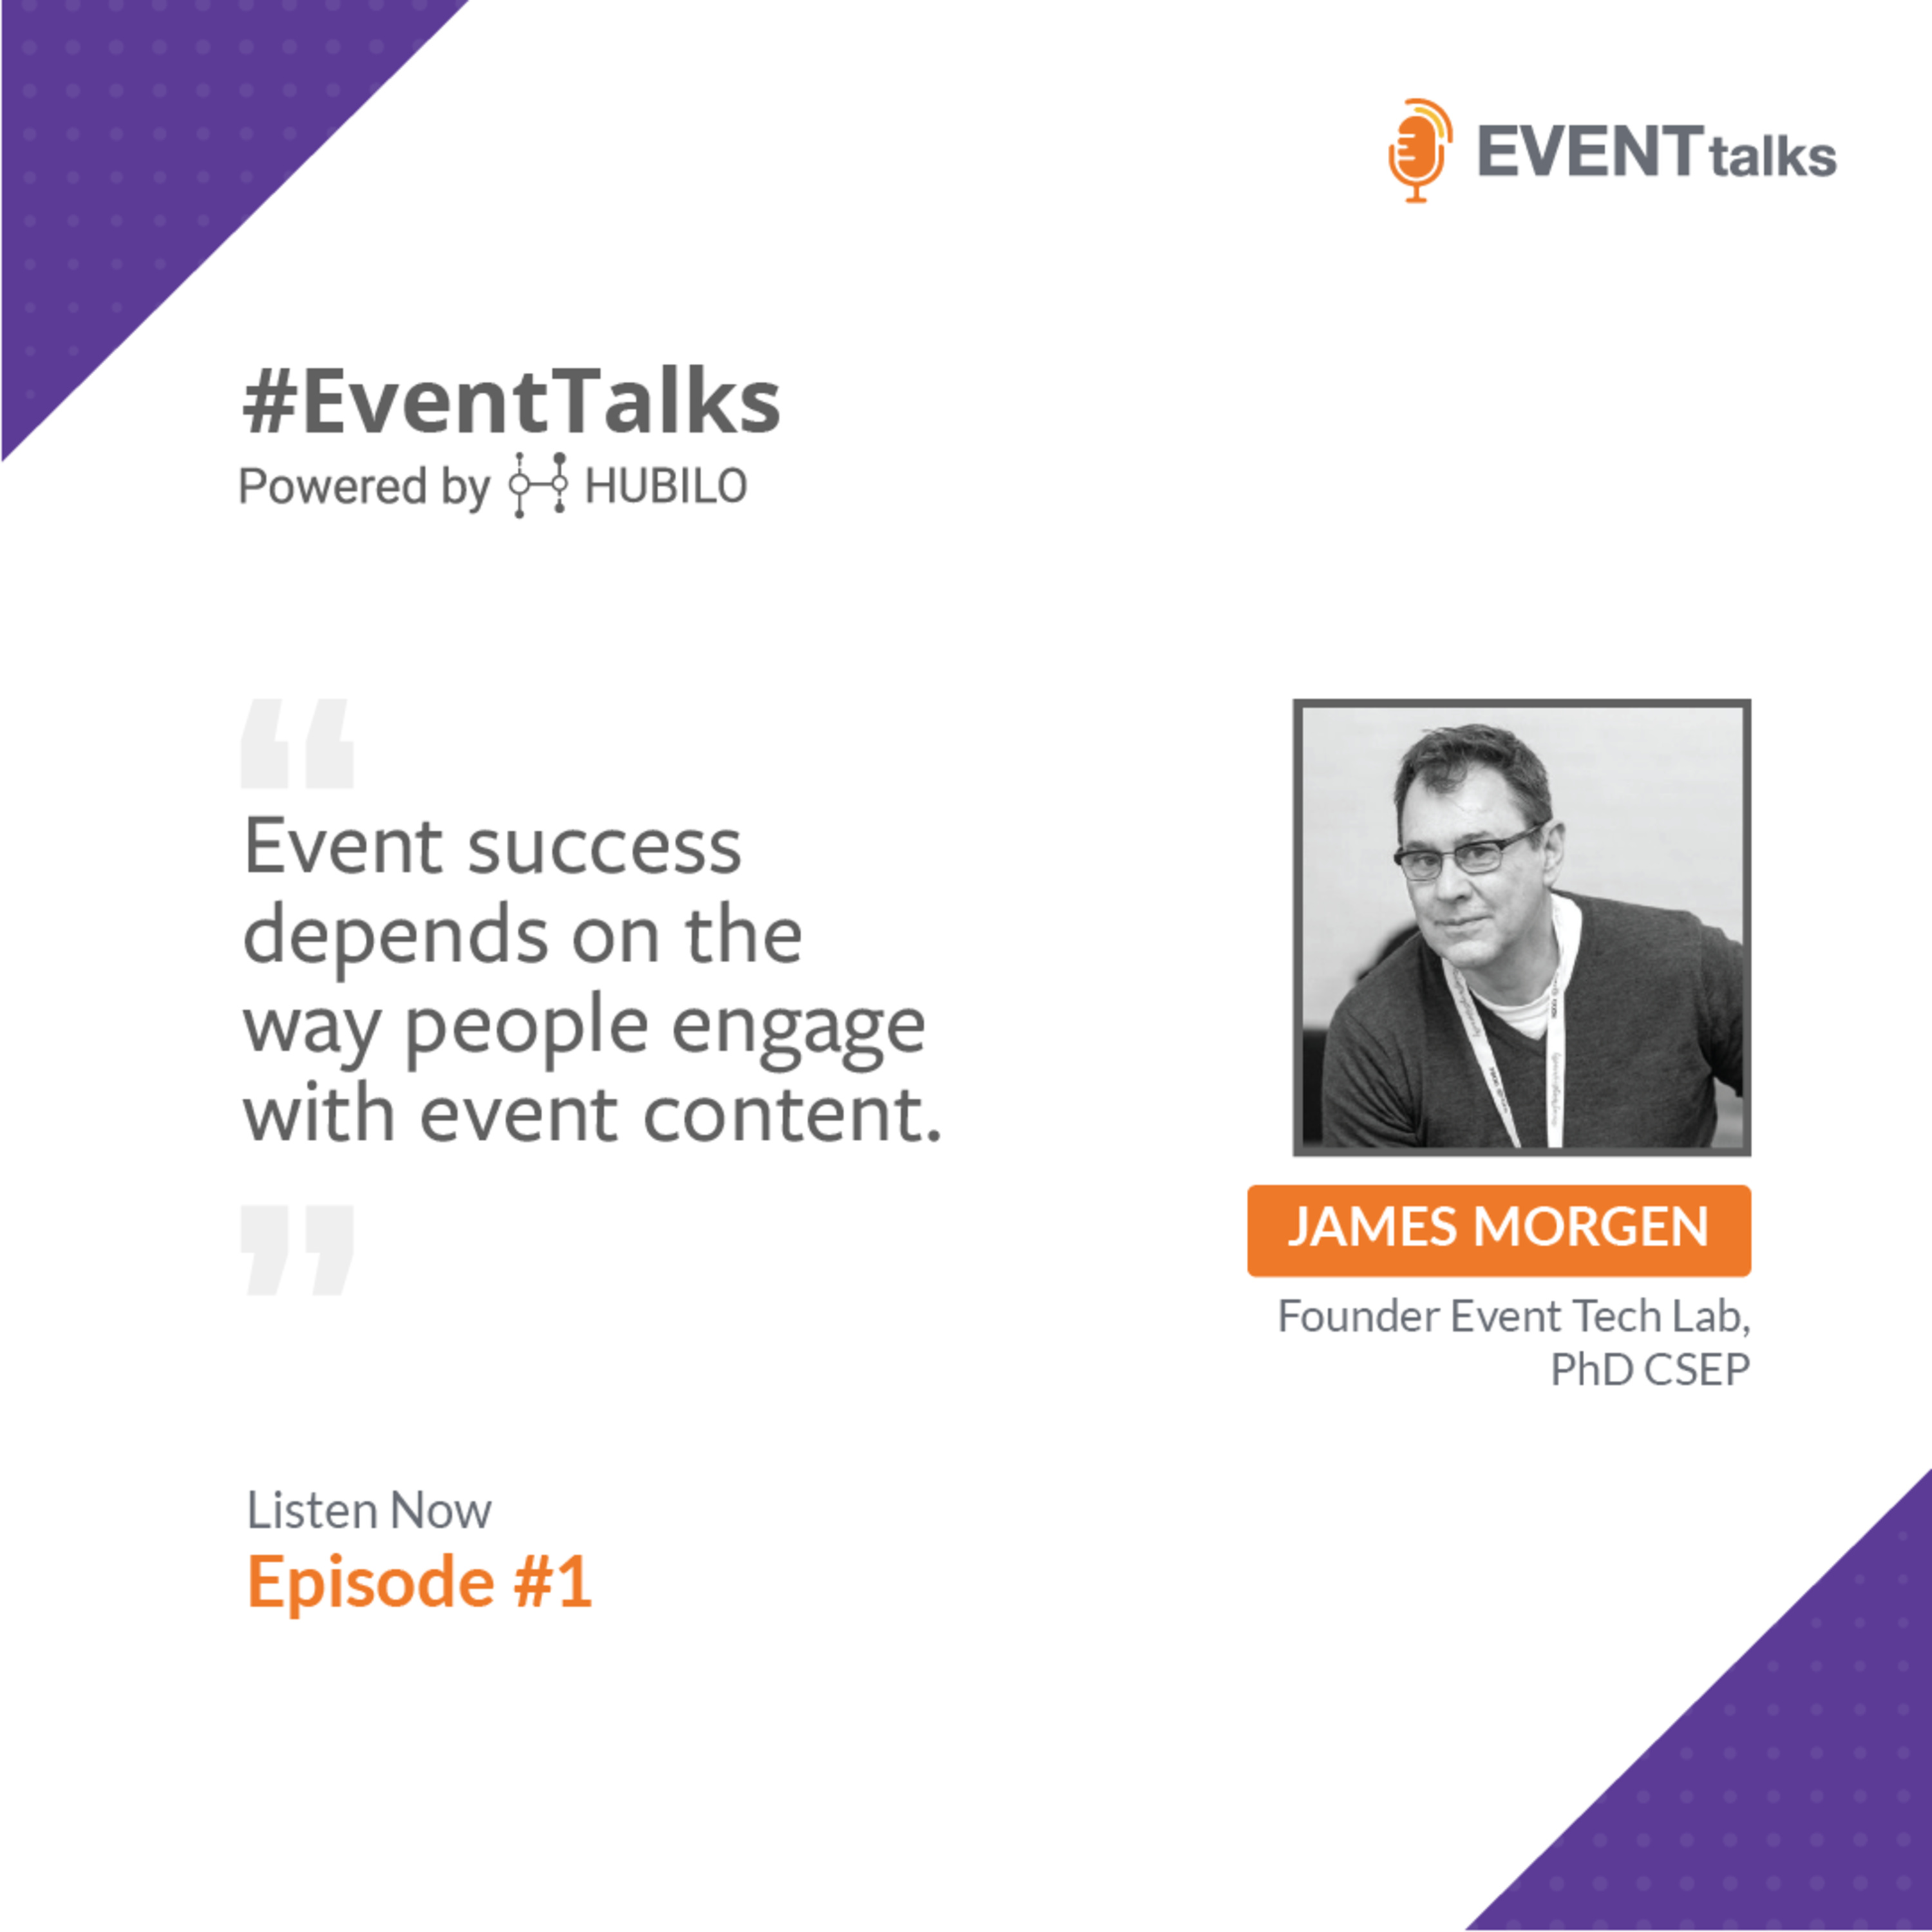 [#EventTalks] Episode 1: All about Event Tech, Event Design & Marketing with Dr. James Morgan